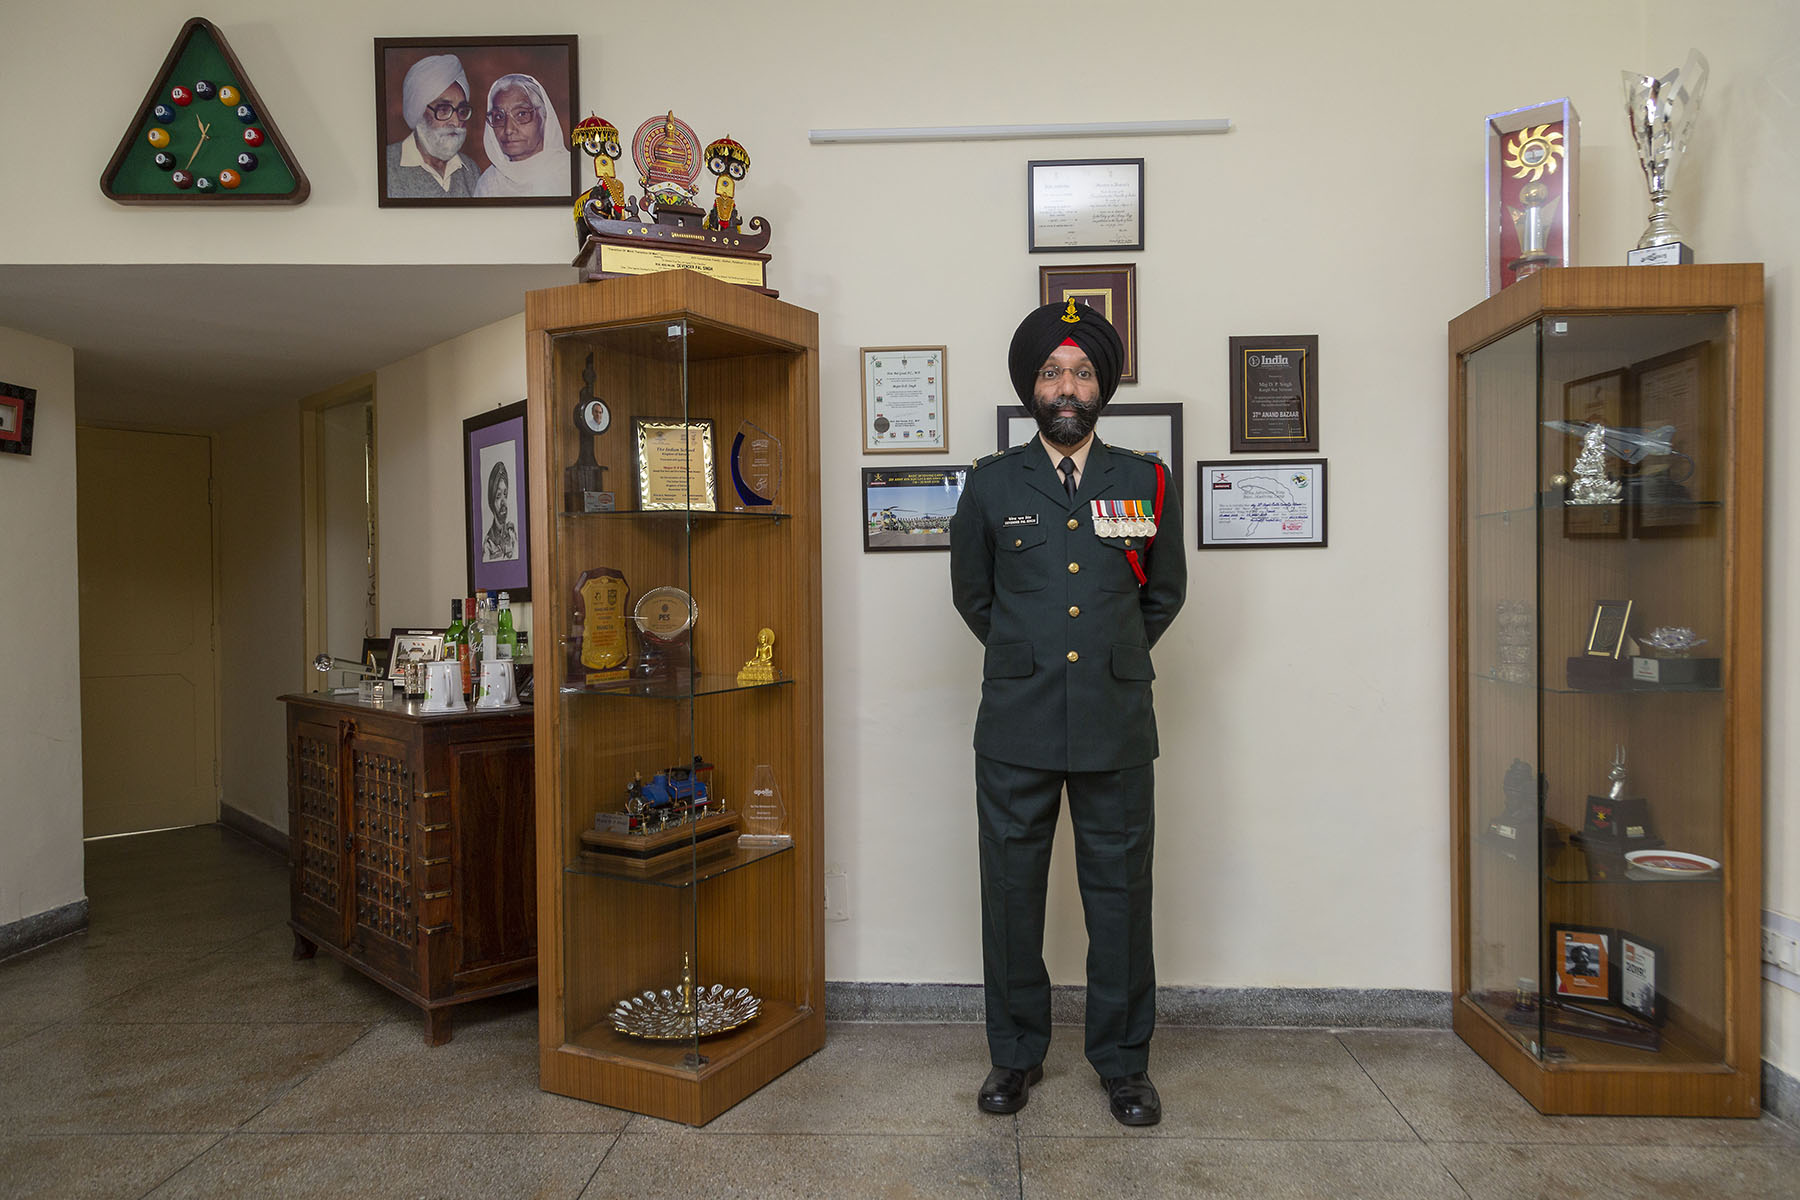 DP standing in military uniform between two glass cabinets filled with trophies, with framed certificates on the wall behind him. High up to the left is a framed photo of an elderly couple.